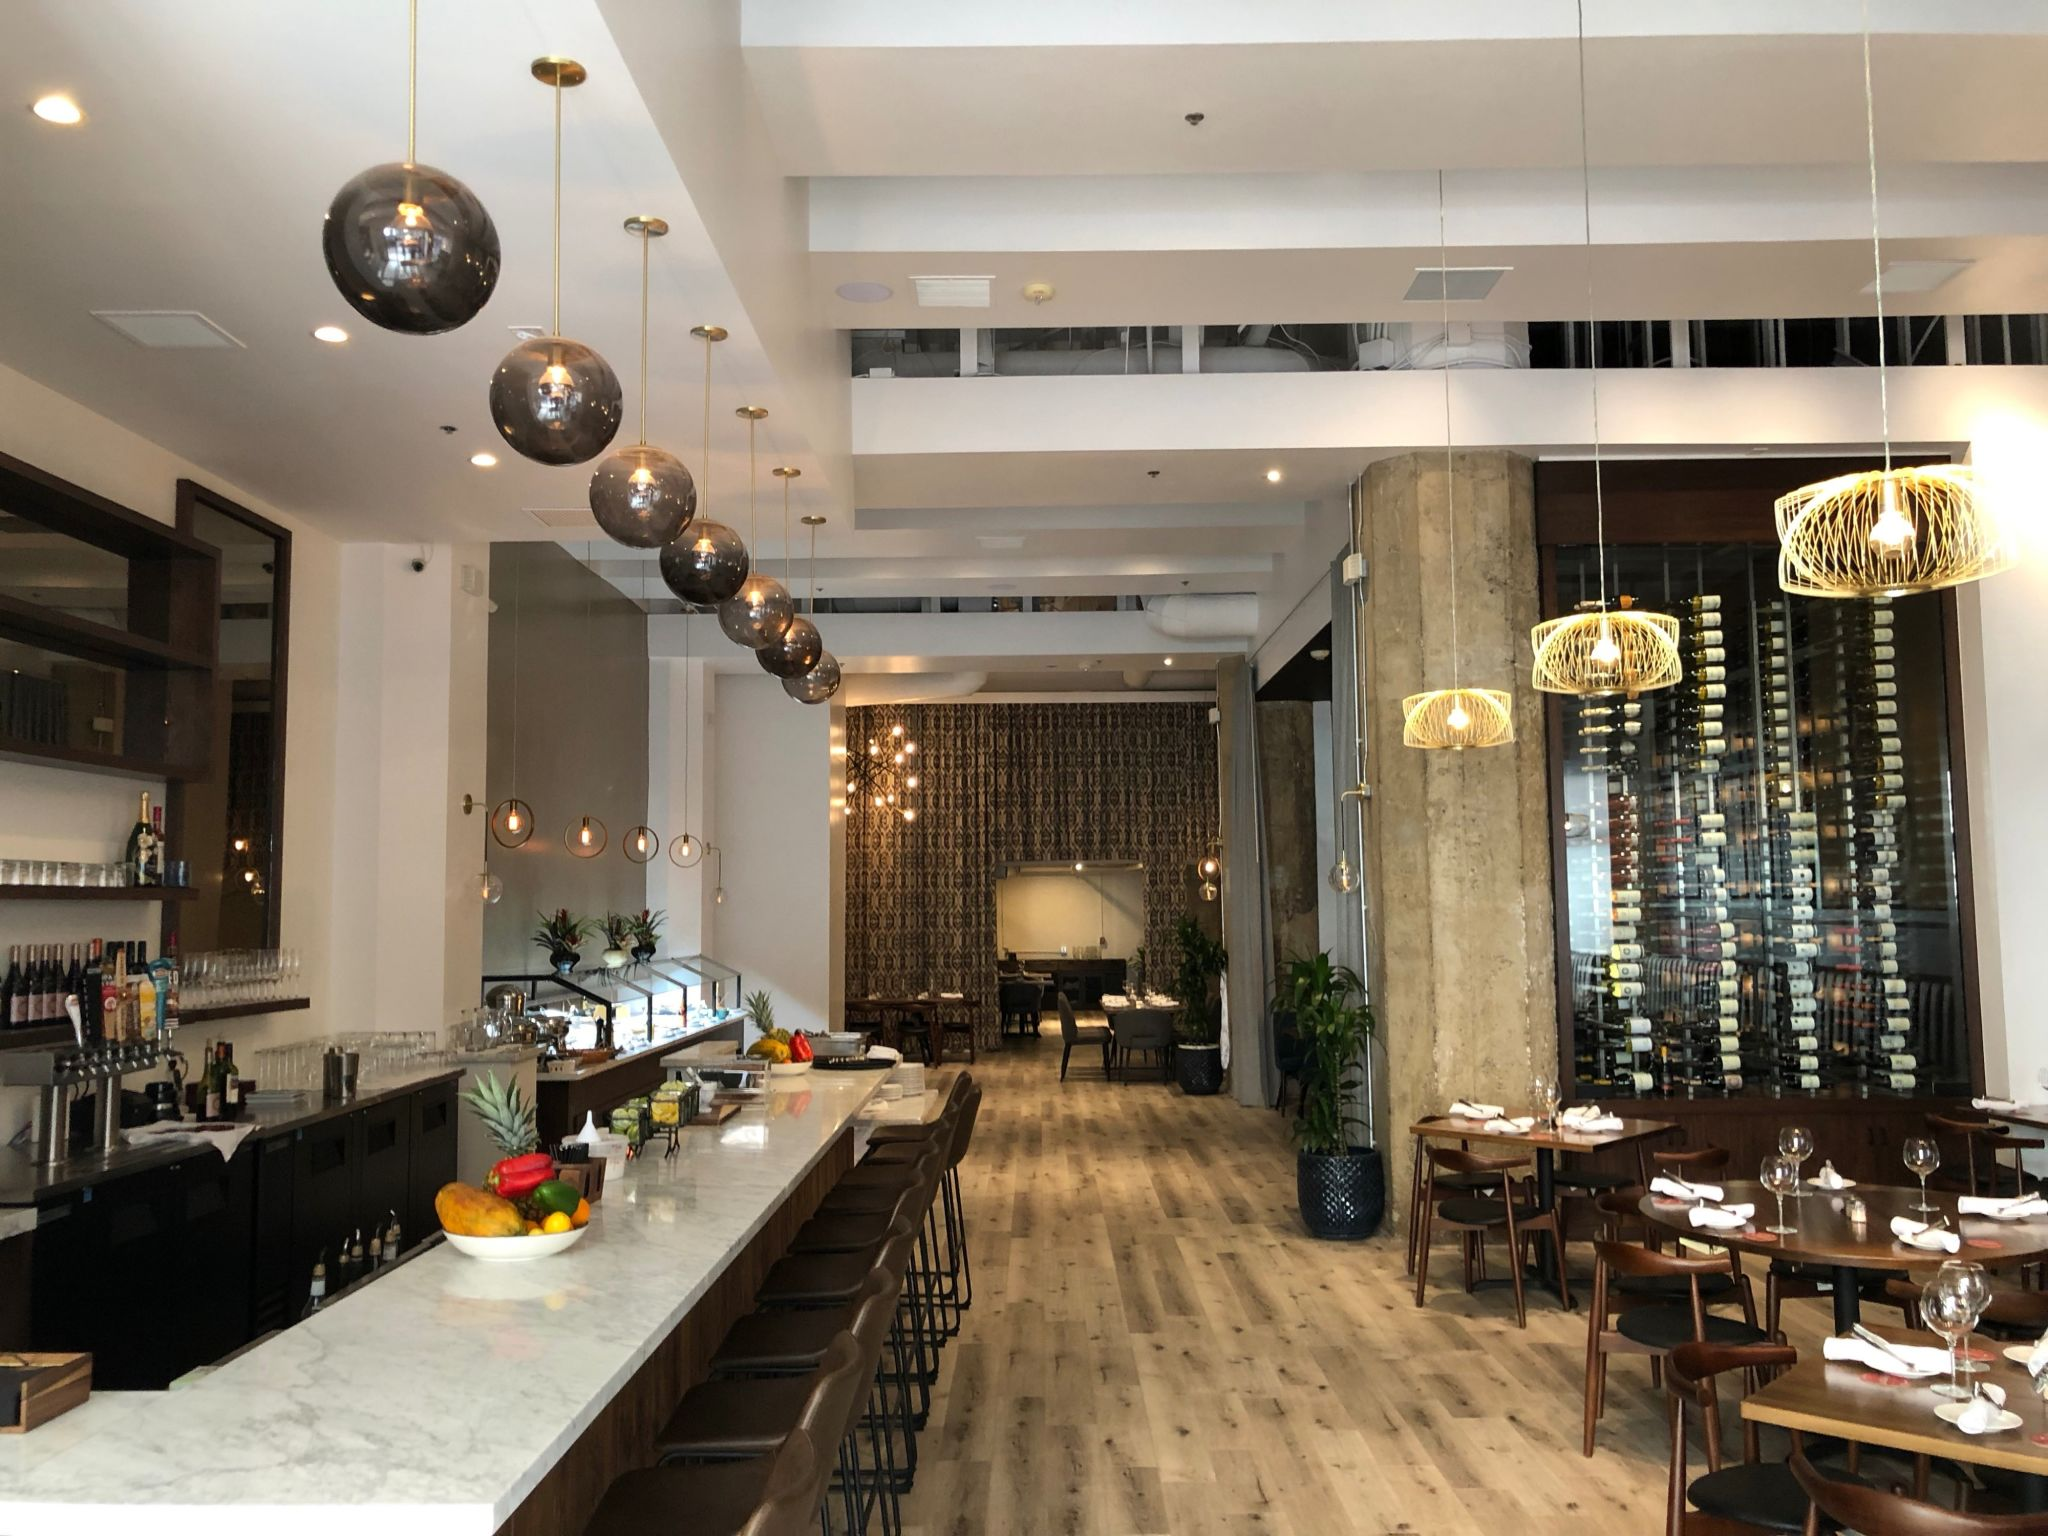 BEAUTIFUL MODERN RESTAURANT / LOUNGE NEXT TO BOTTEGA LOUIE IN DOWNTOWN in  Los Angeles